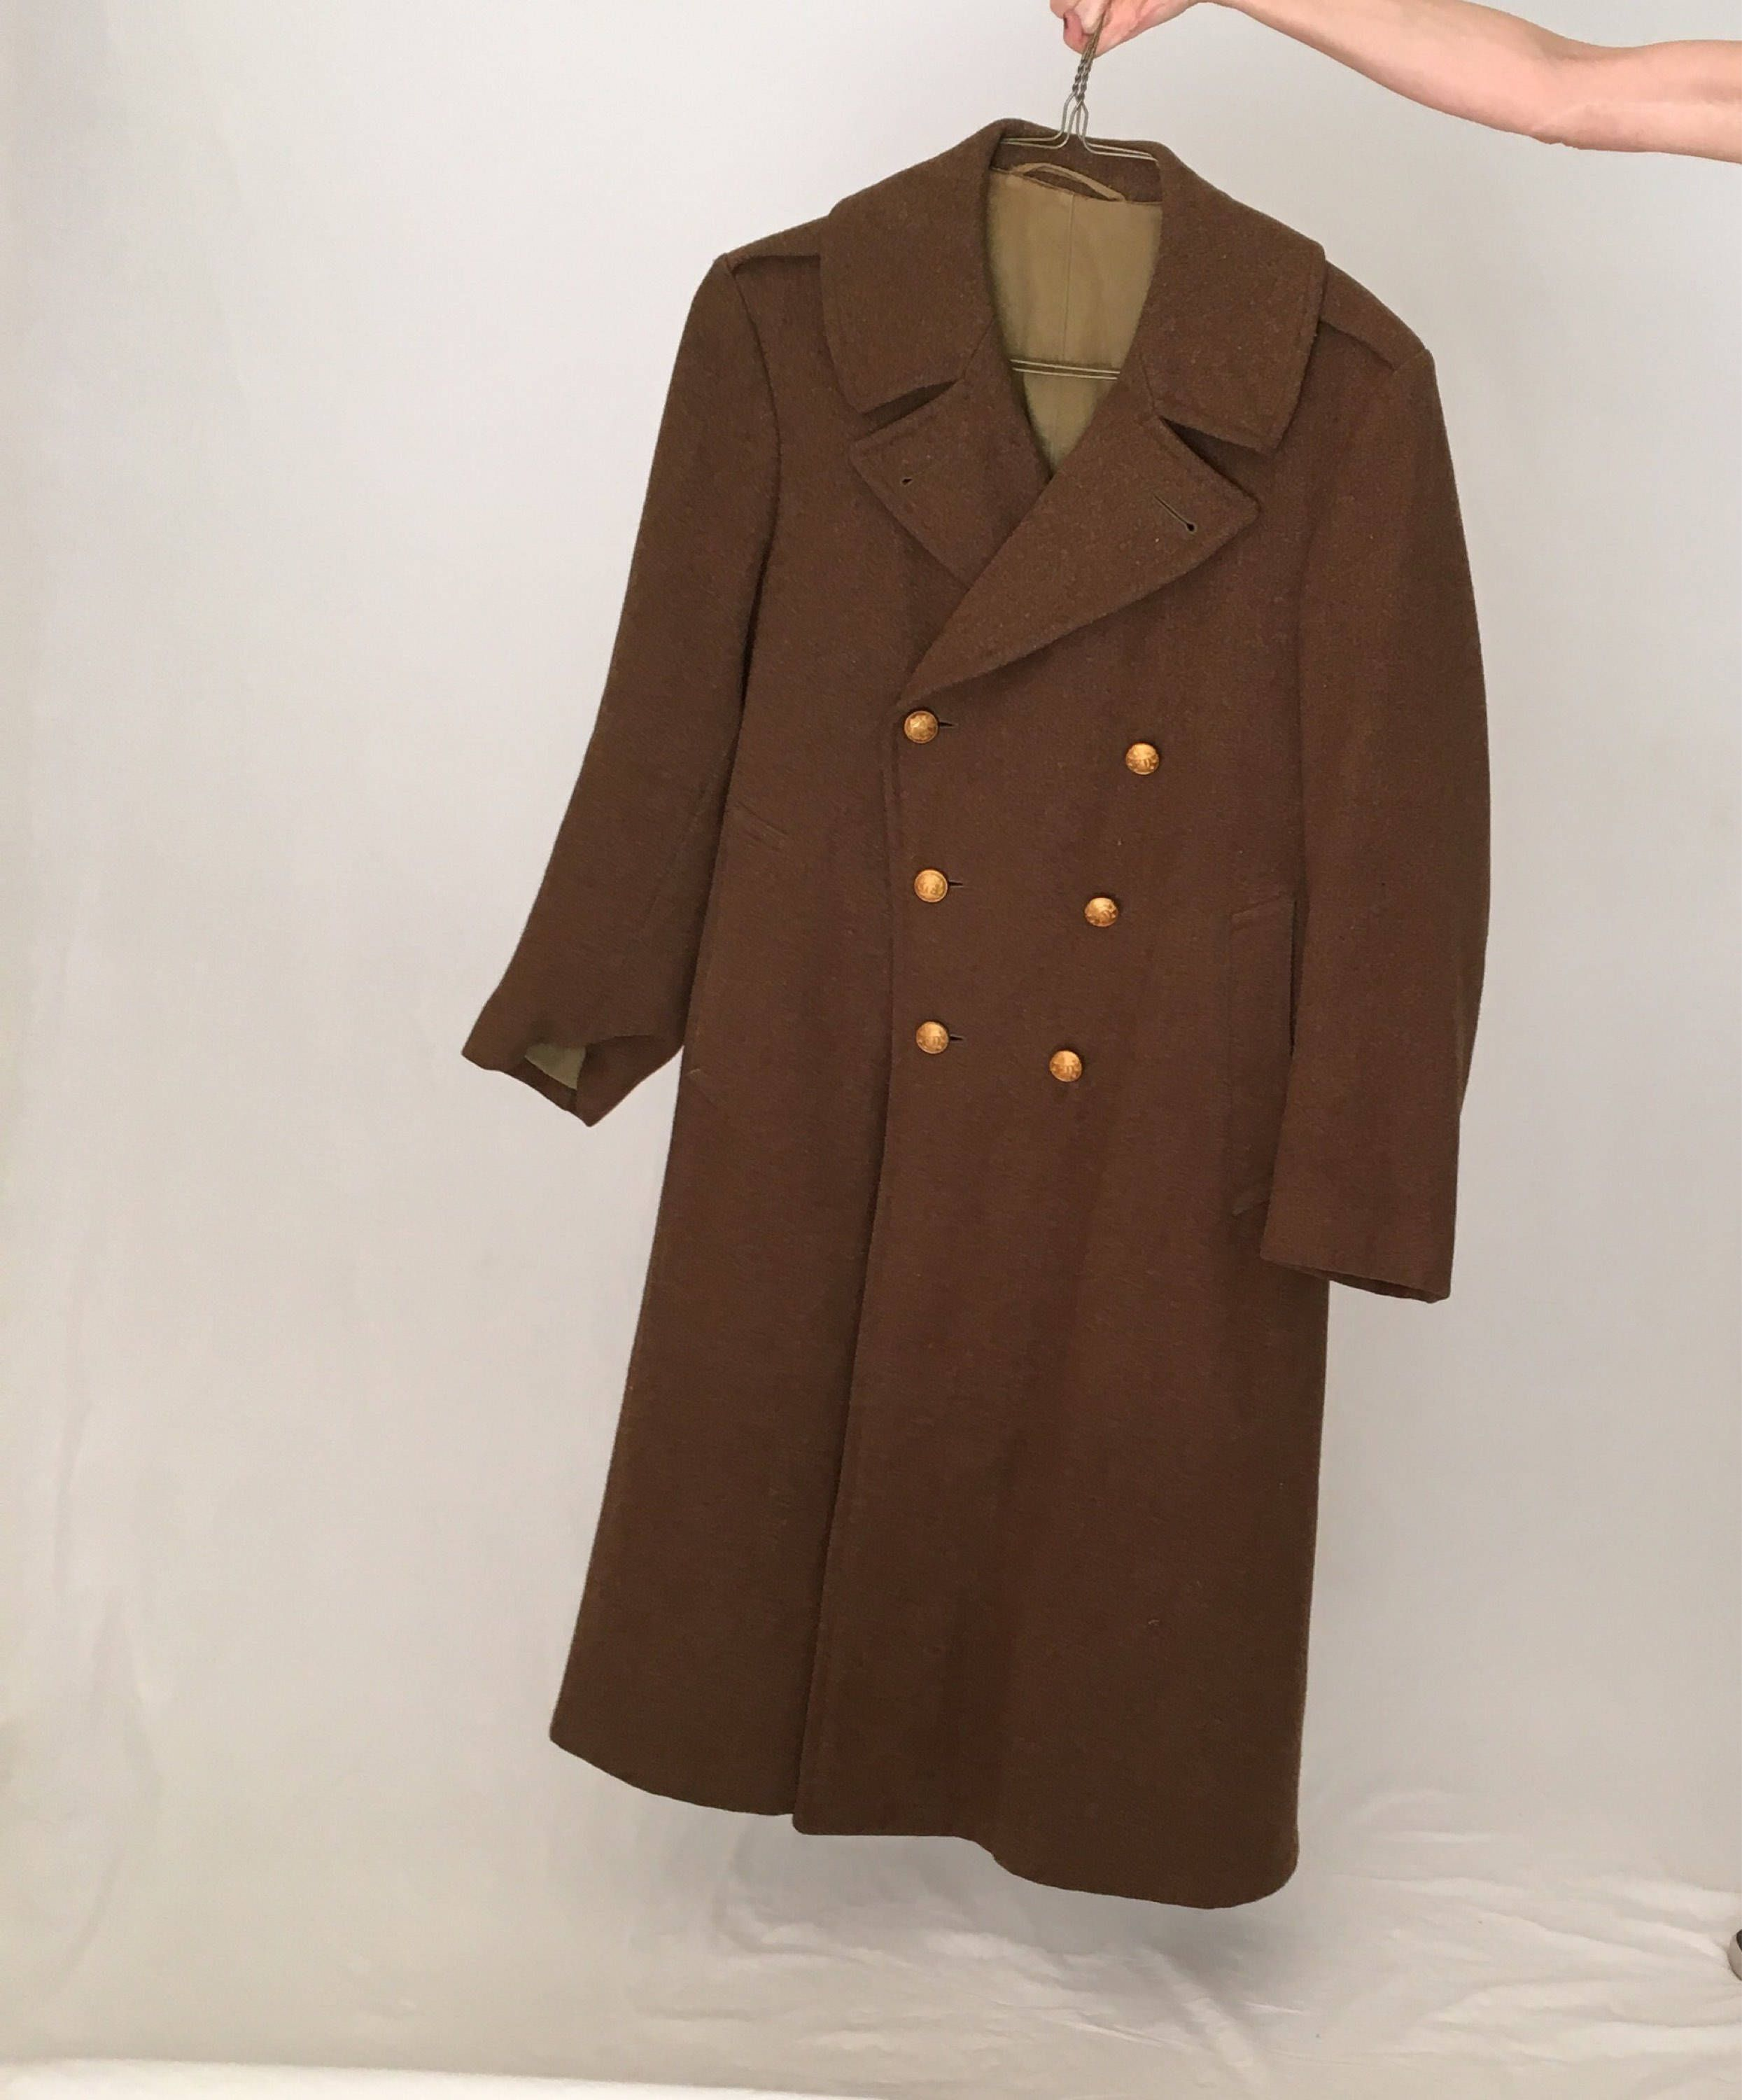 62f88ed9c582 Men Vintage wool coat 42 M L/brown Pea coat overcoat/50s 1950s 20s 1920s  30s 40s 1940s coat/long double breasted military army winter coat by ...